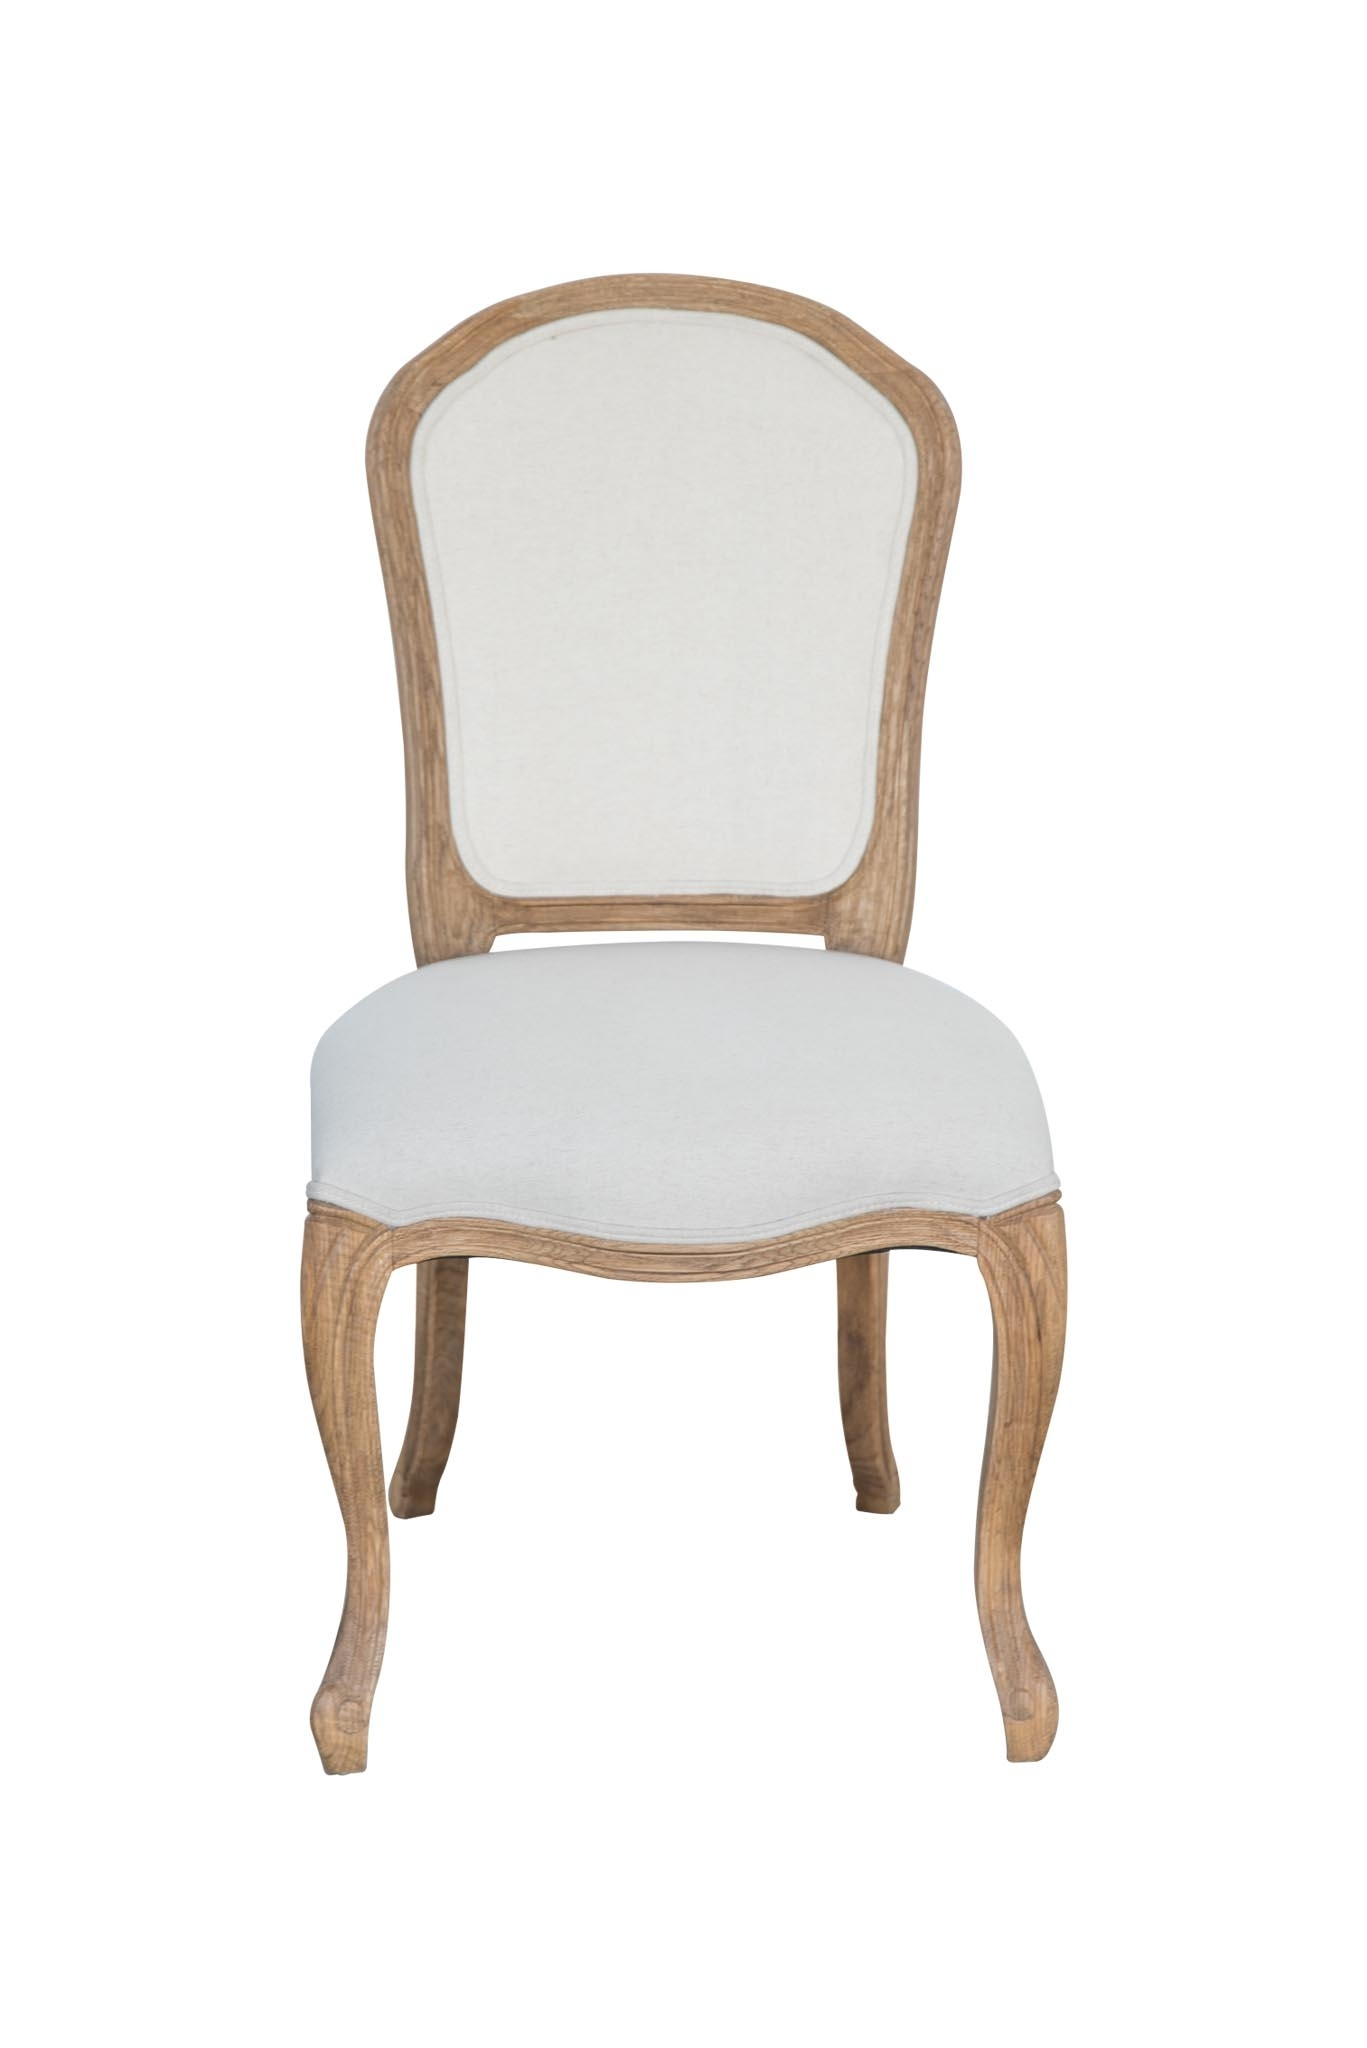 Zen Accent Chair – Teak And Cane – Abide Interiors Within Zen Rocking Chairs (View 15 of 15)